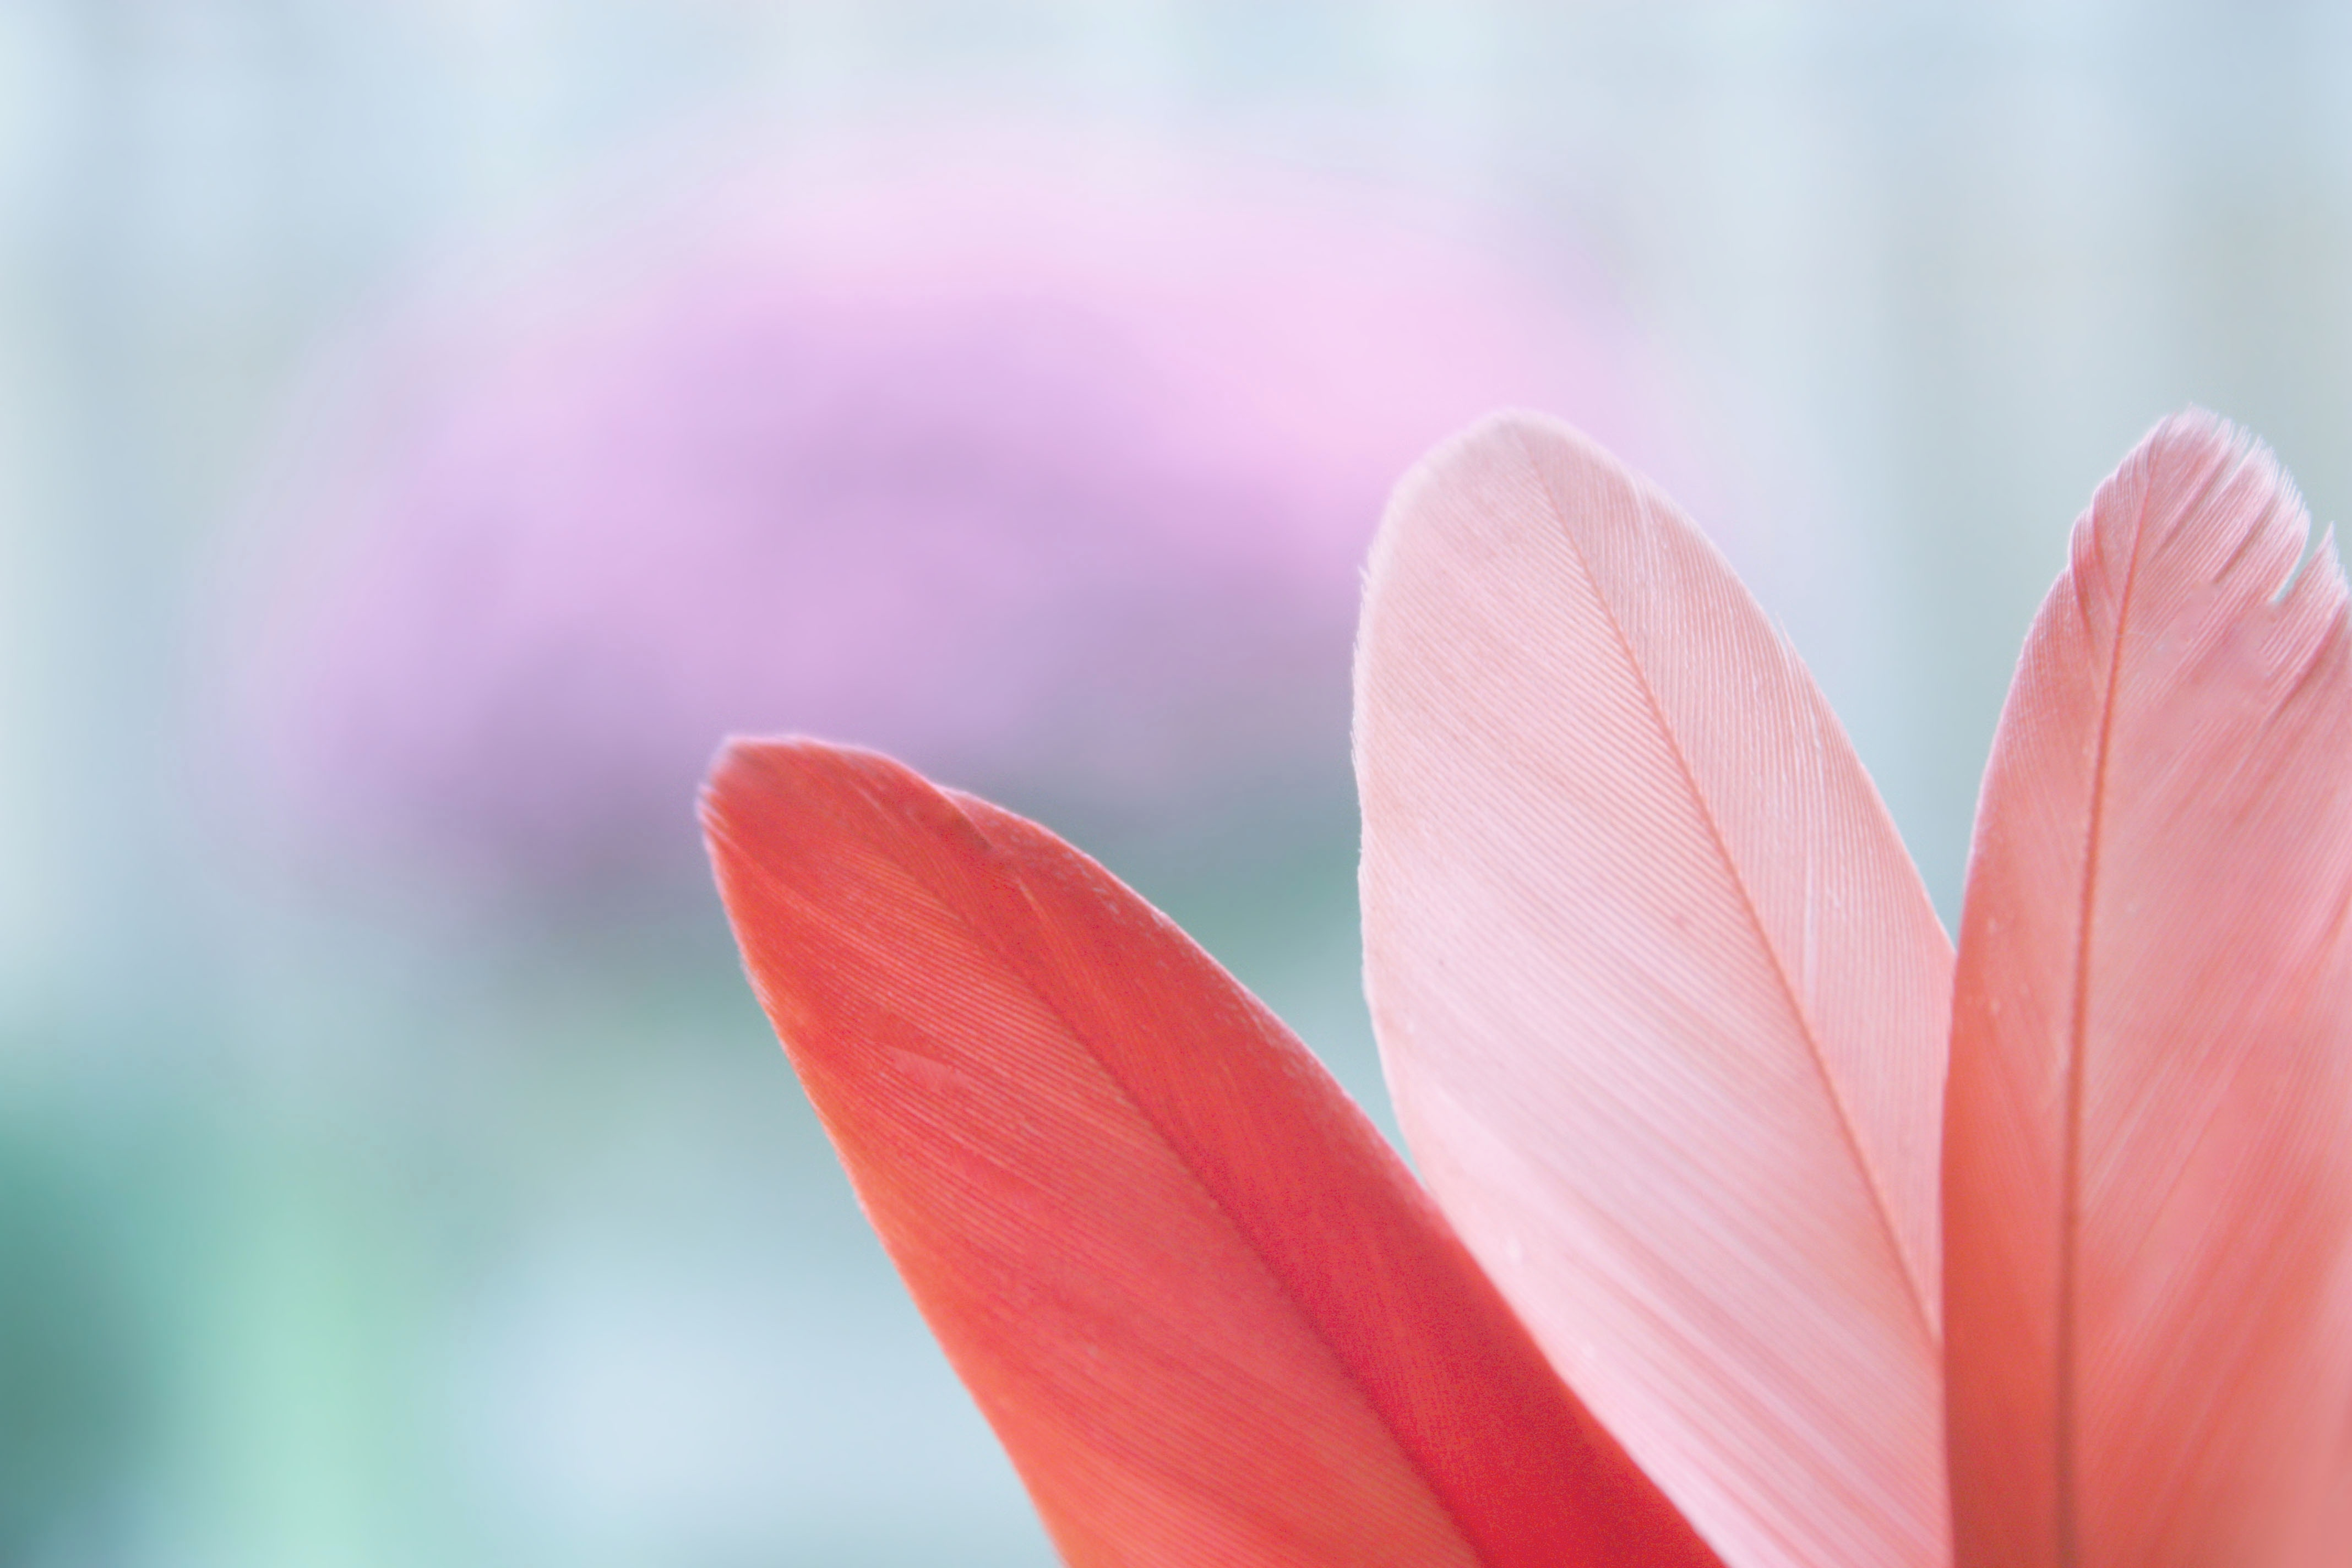 Feather background by Lakeisha Bennett